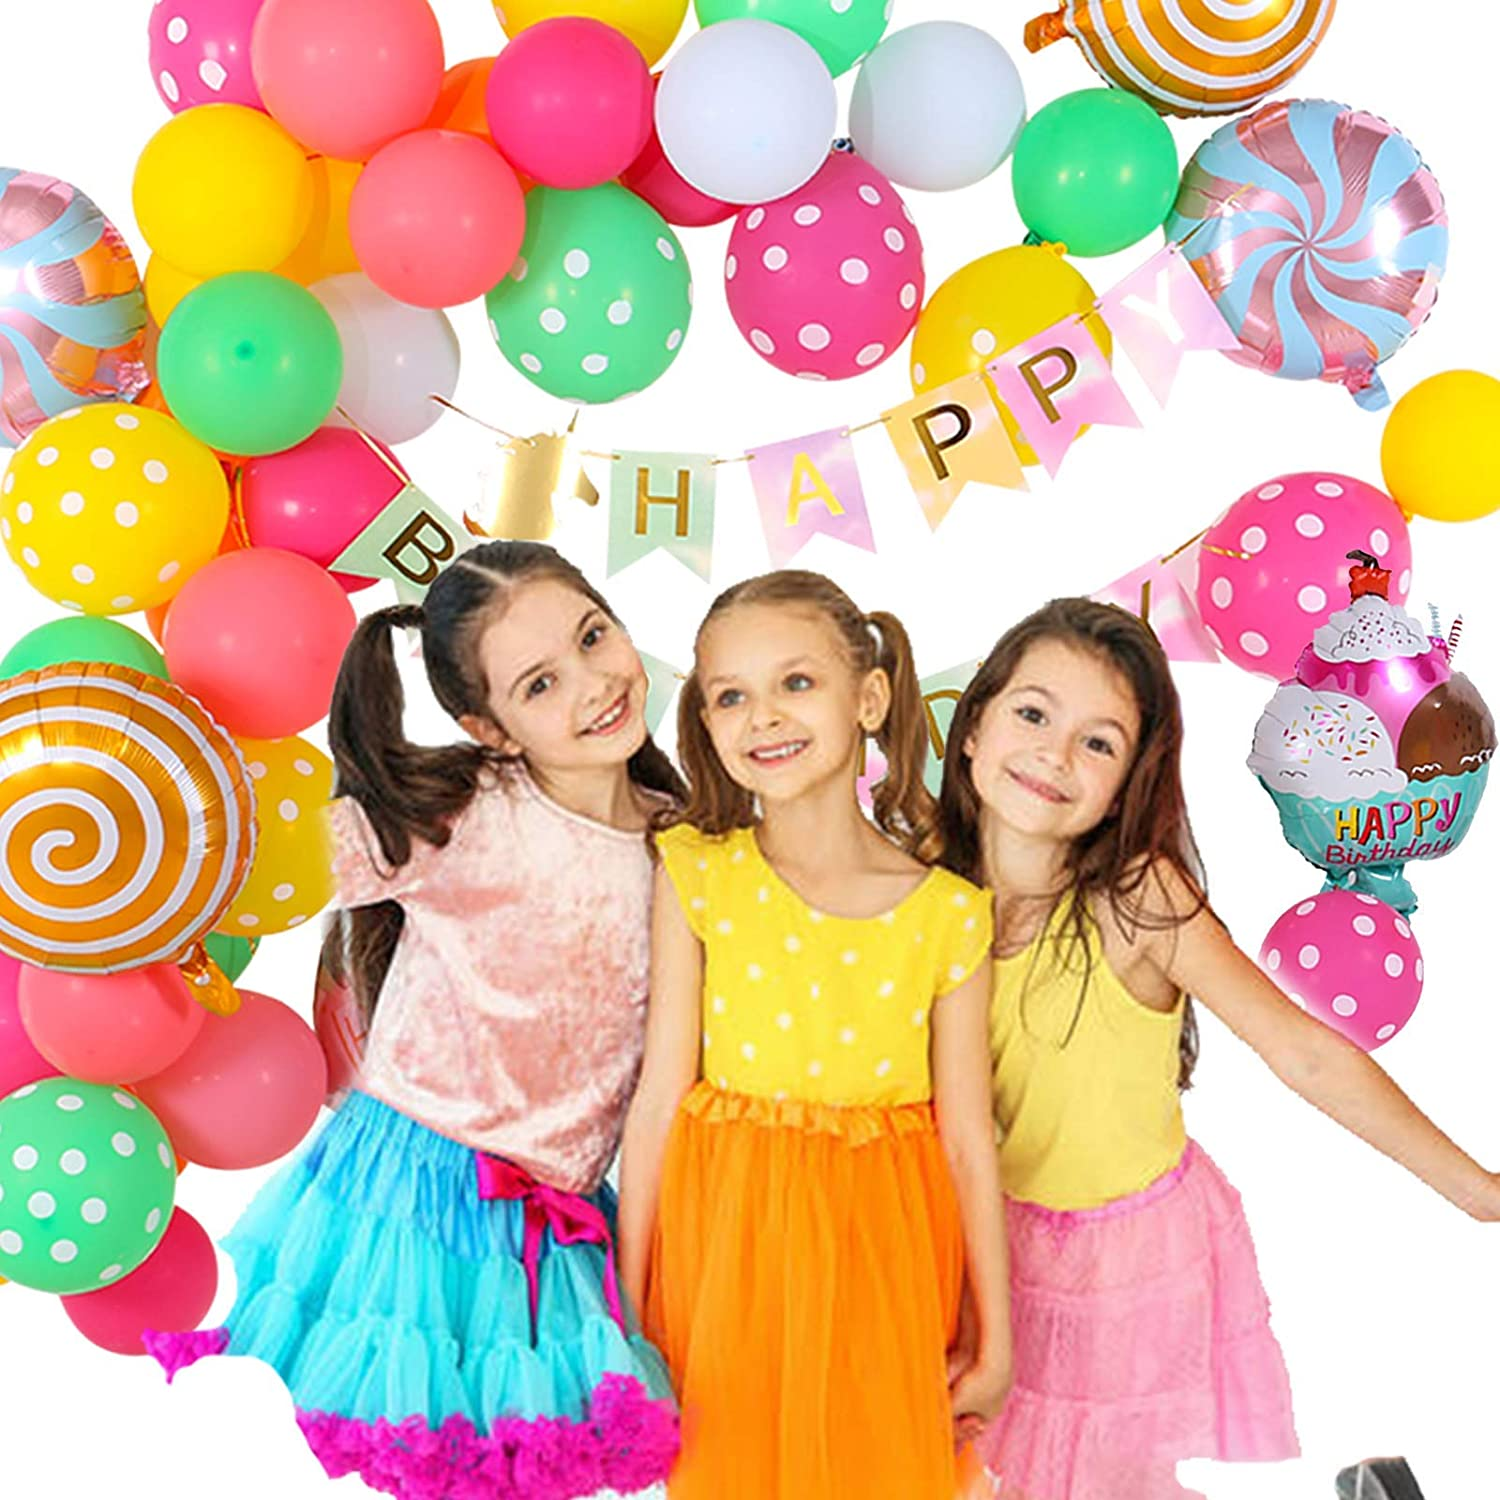 Happy Birthday Banner with Latex Water Balloons Arch Kit Foil Balloon Ice Cream Donut Birthday Party Decorations for Girls Kids Candy